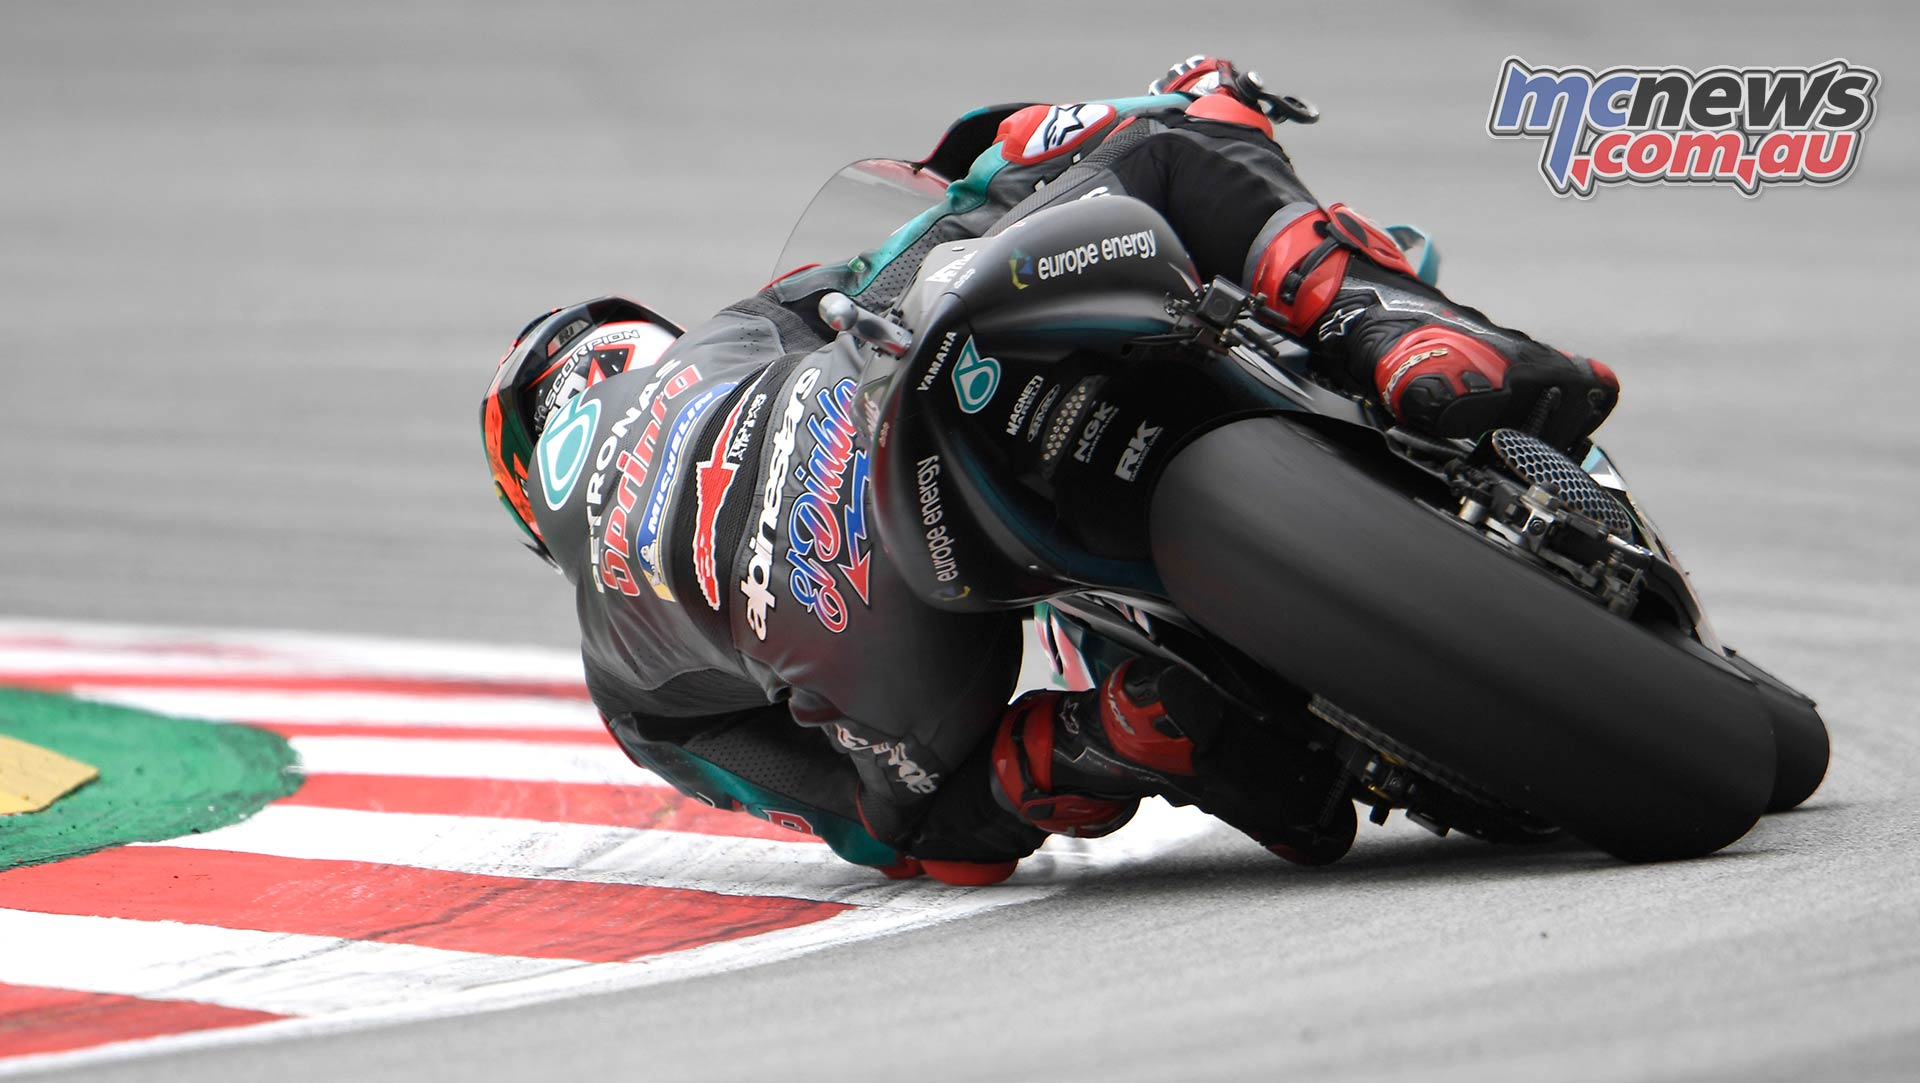 Catalunya Motogp Qualifying Notes Quotes Times Motorcycle News Sport And Reviews